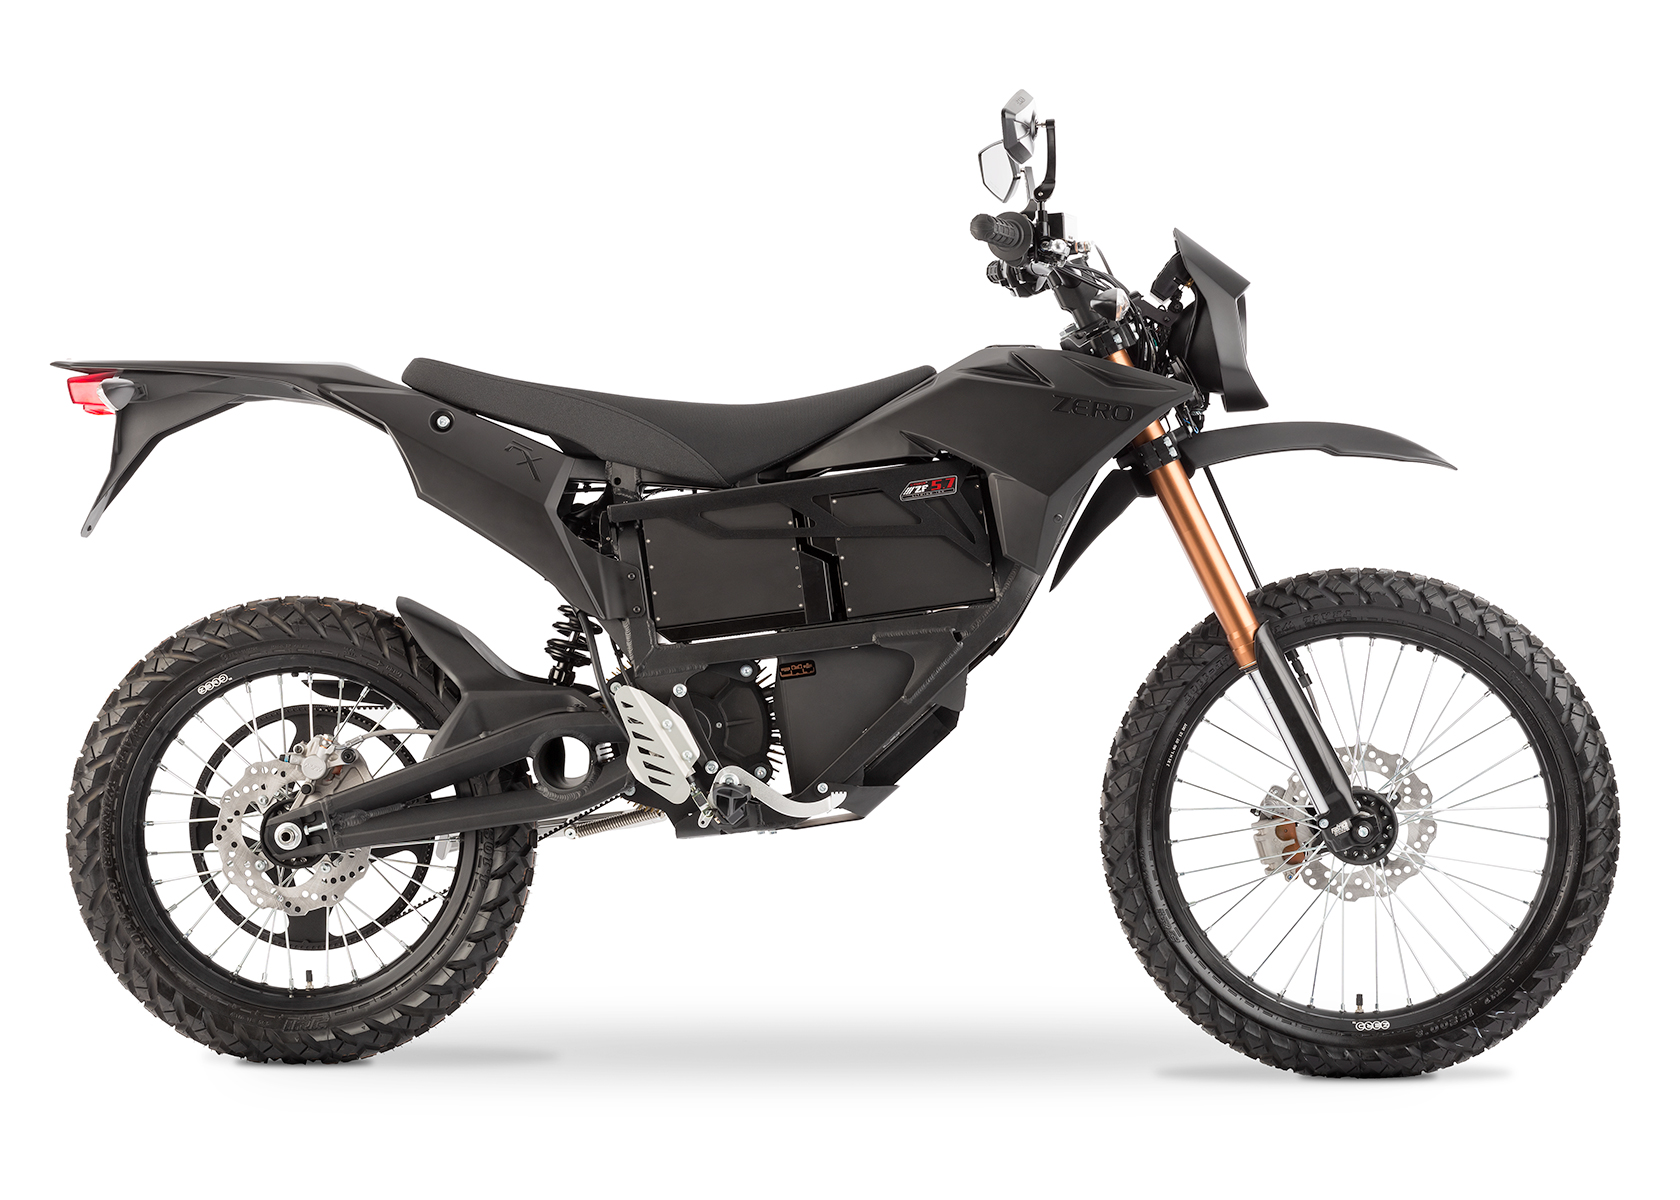 '.2013 Zero FX Electric Motorcycle: Black Profile Right, White Background.'